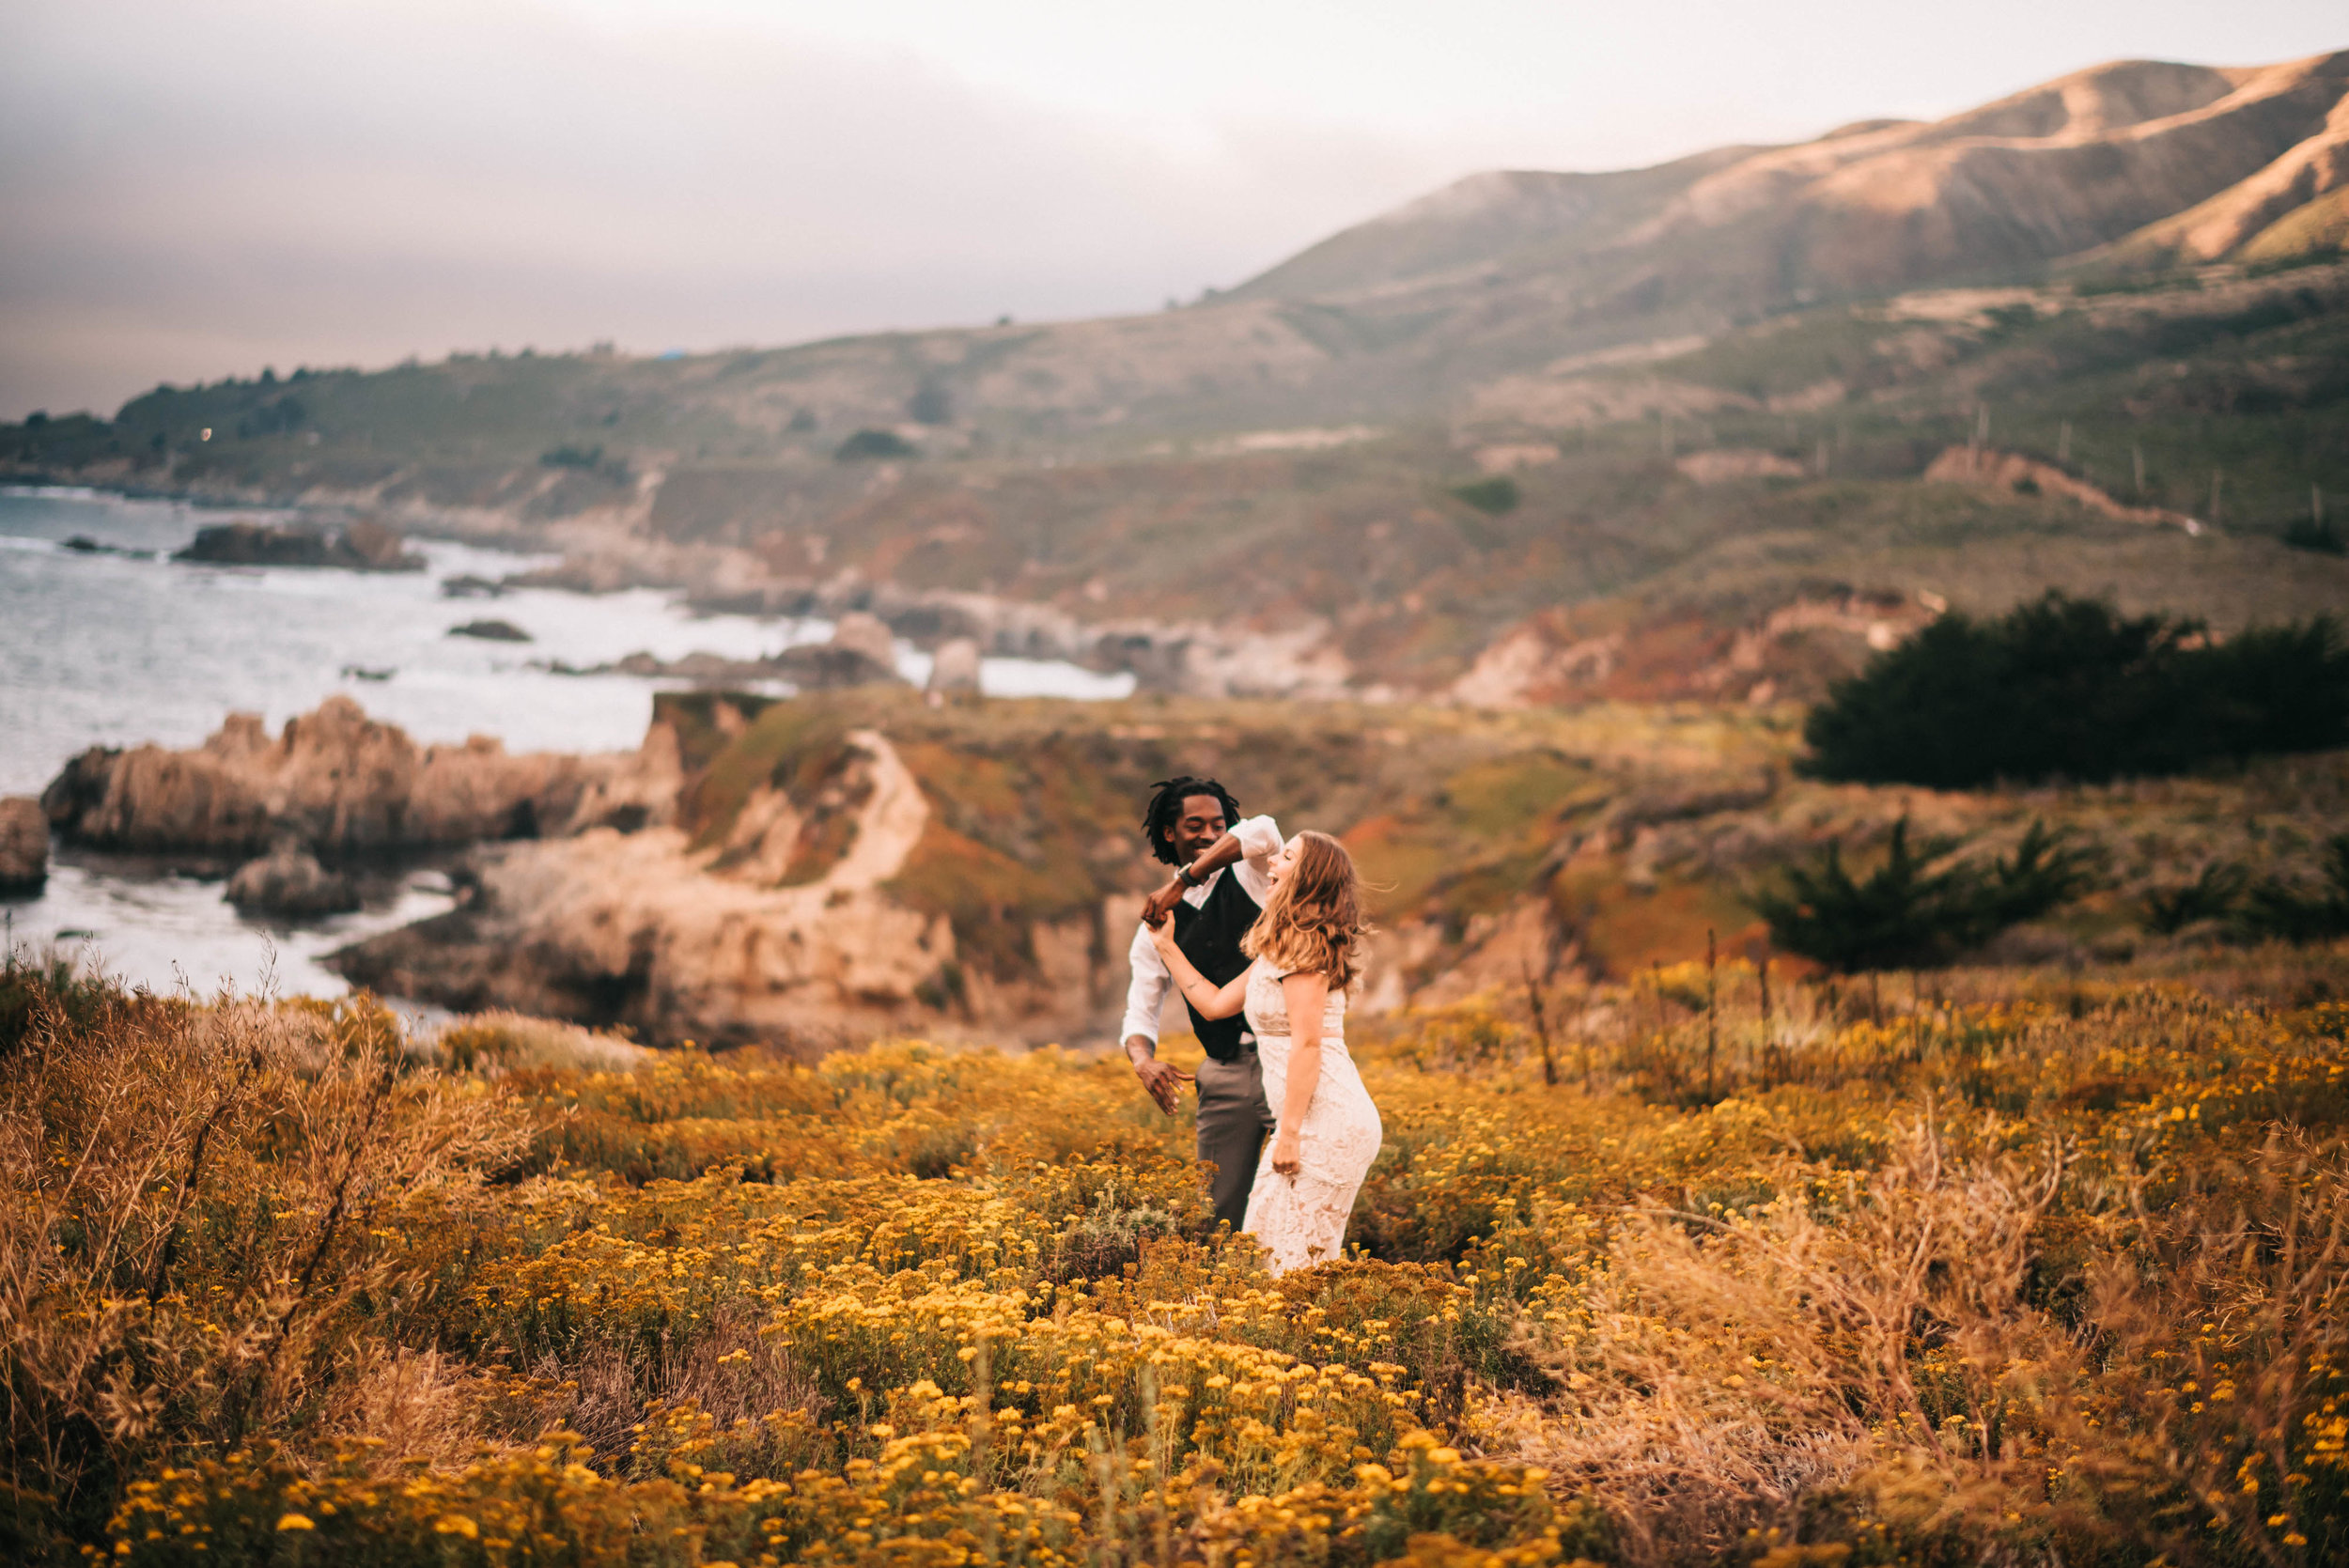 atlanta georgia big sur san francisco california bay area sf oakland wedding portrait adventure engageement nontraditional tattooed couple photographer-48.jpg